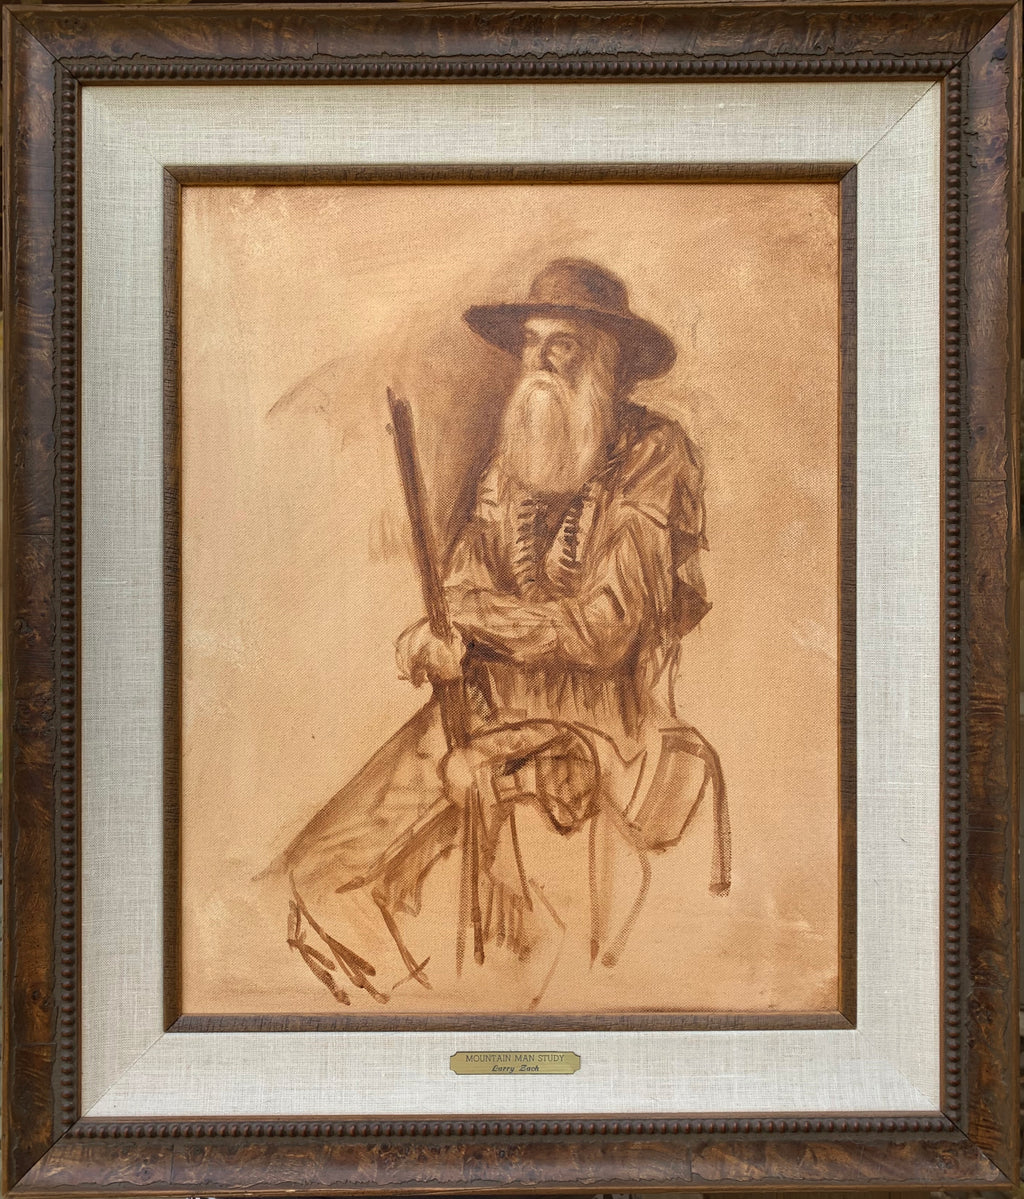 Mountain Man Study – Original